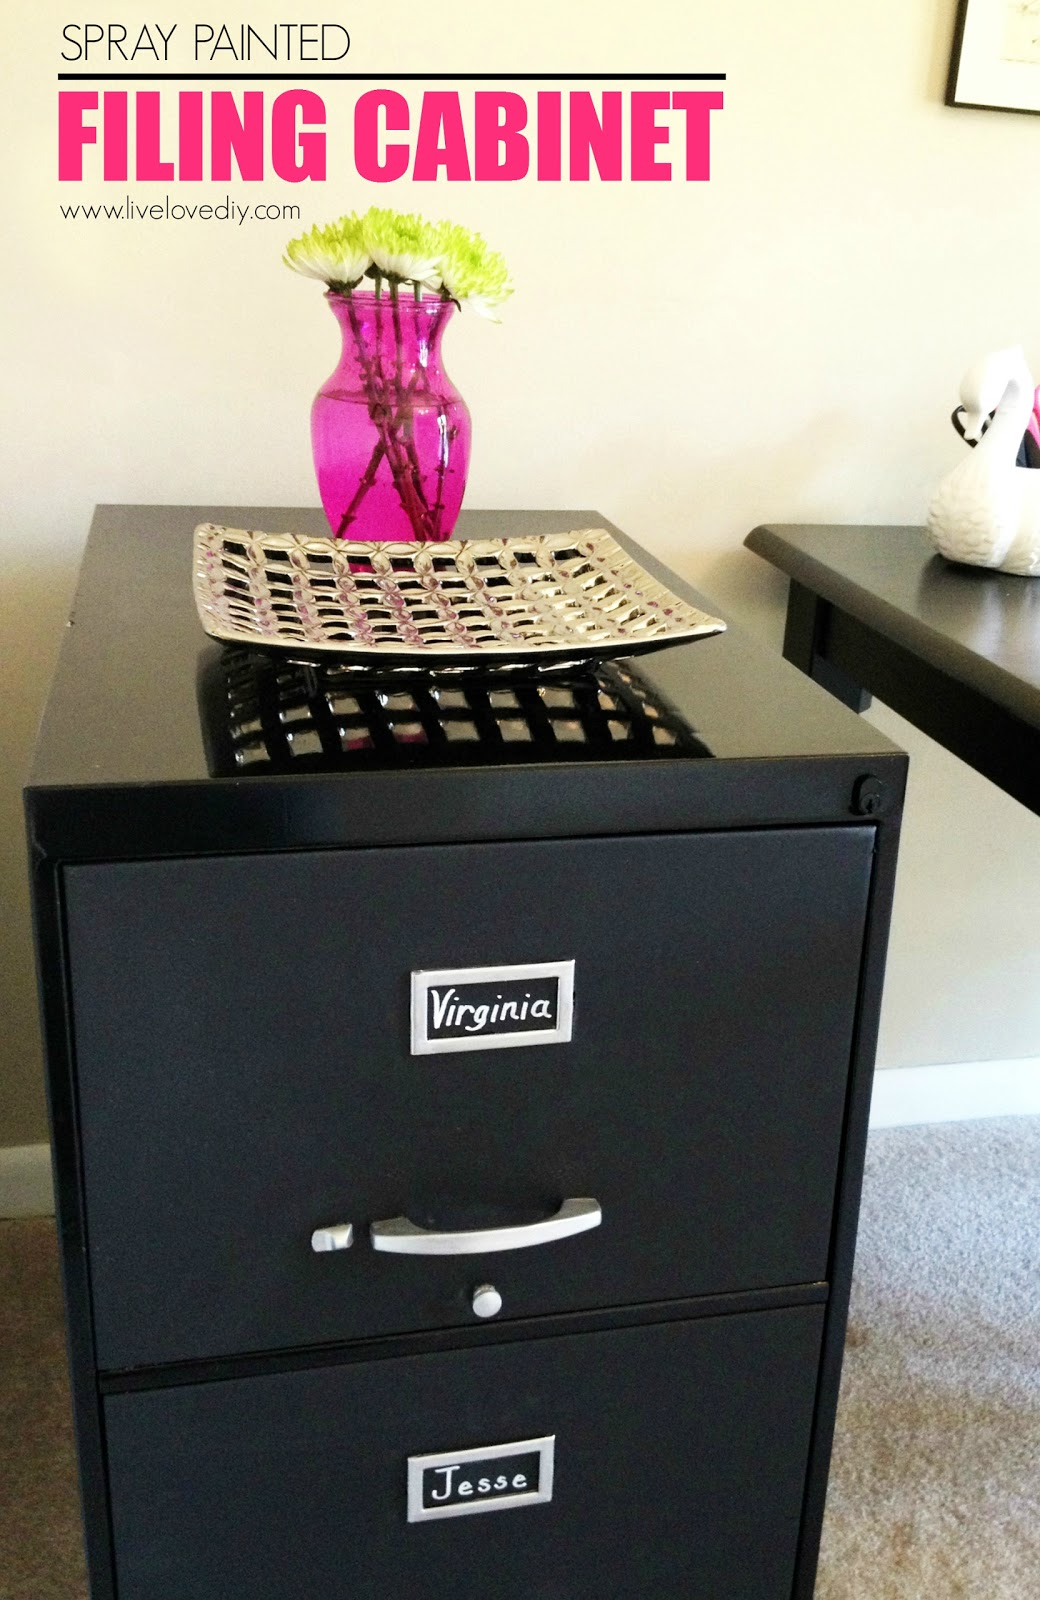 The filing cabinet turned out so well that it looks like we bought it that  way  Using a high gloss finish on metal creates an amazing factory like  finish. 10 Spray Paint Tips  What You Never Knew About Spray Paint